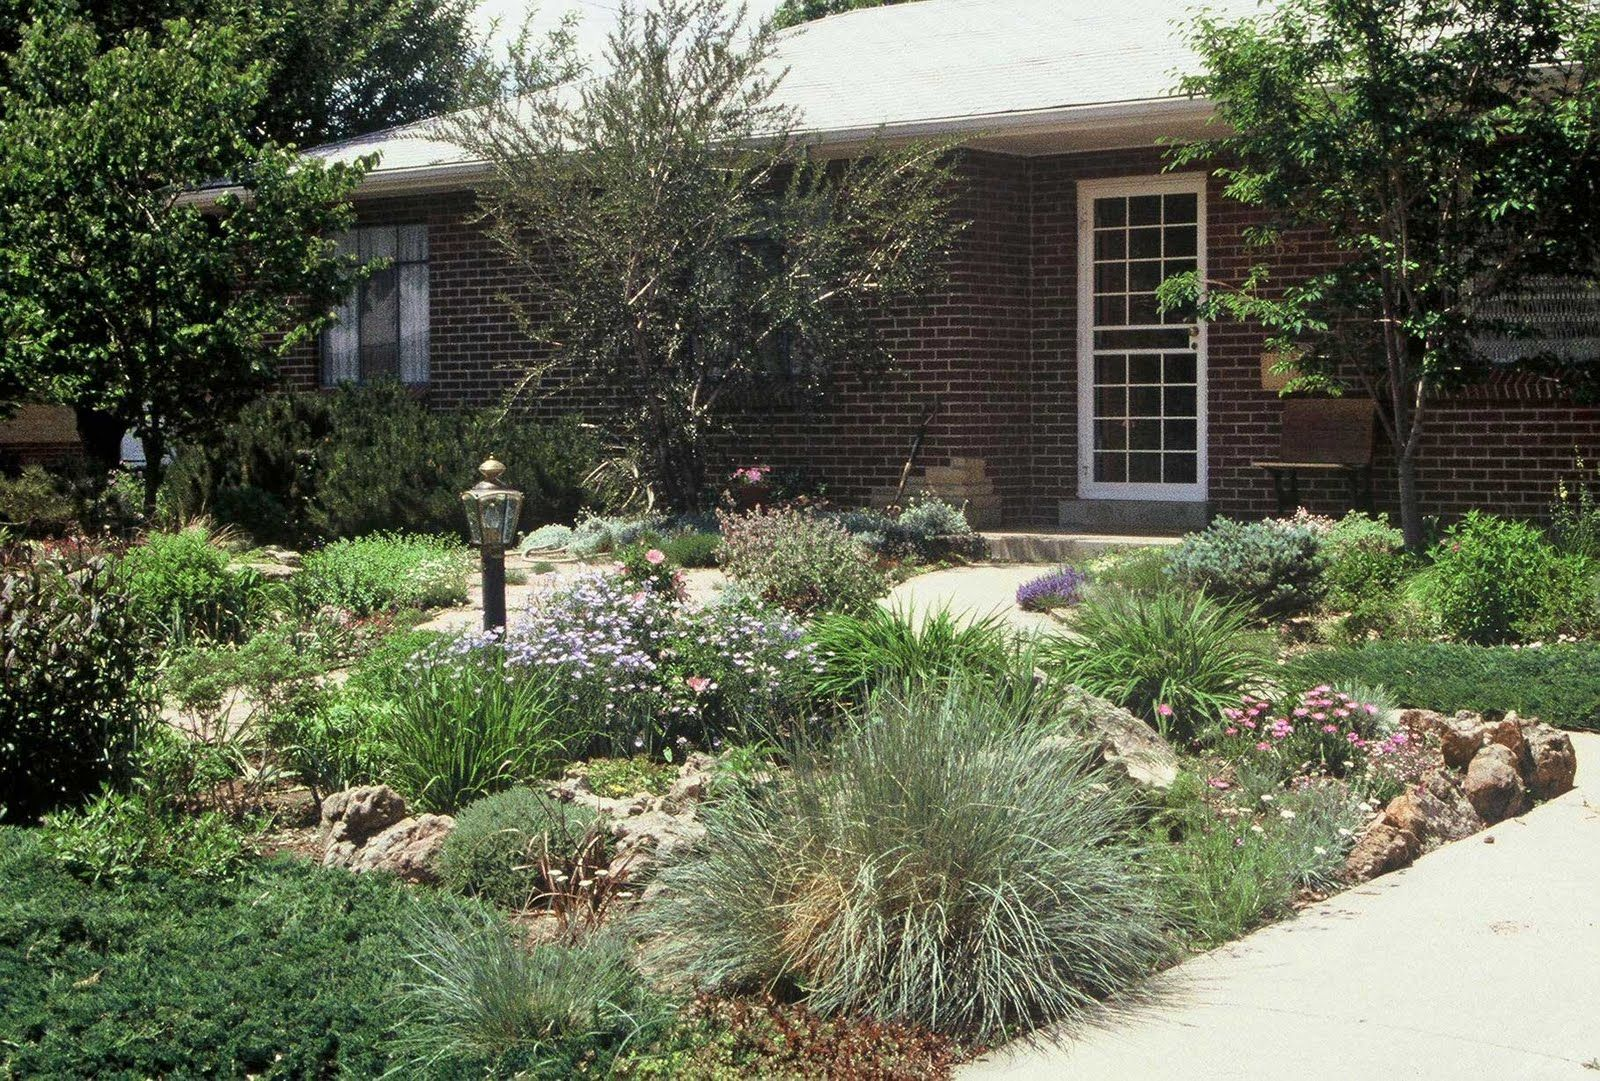 Simple landscaping ideas for front yards backyard ideas for Front garden landscaping